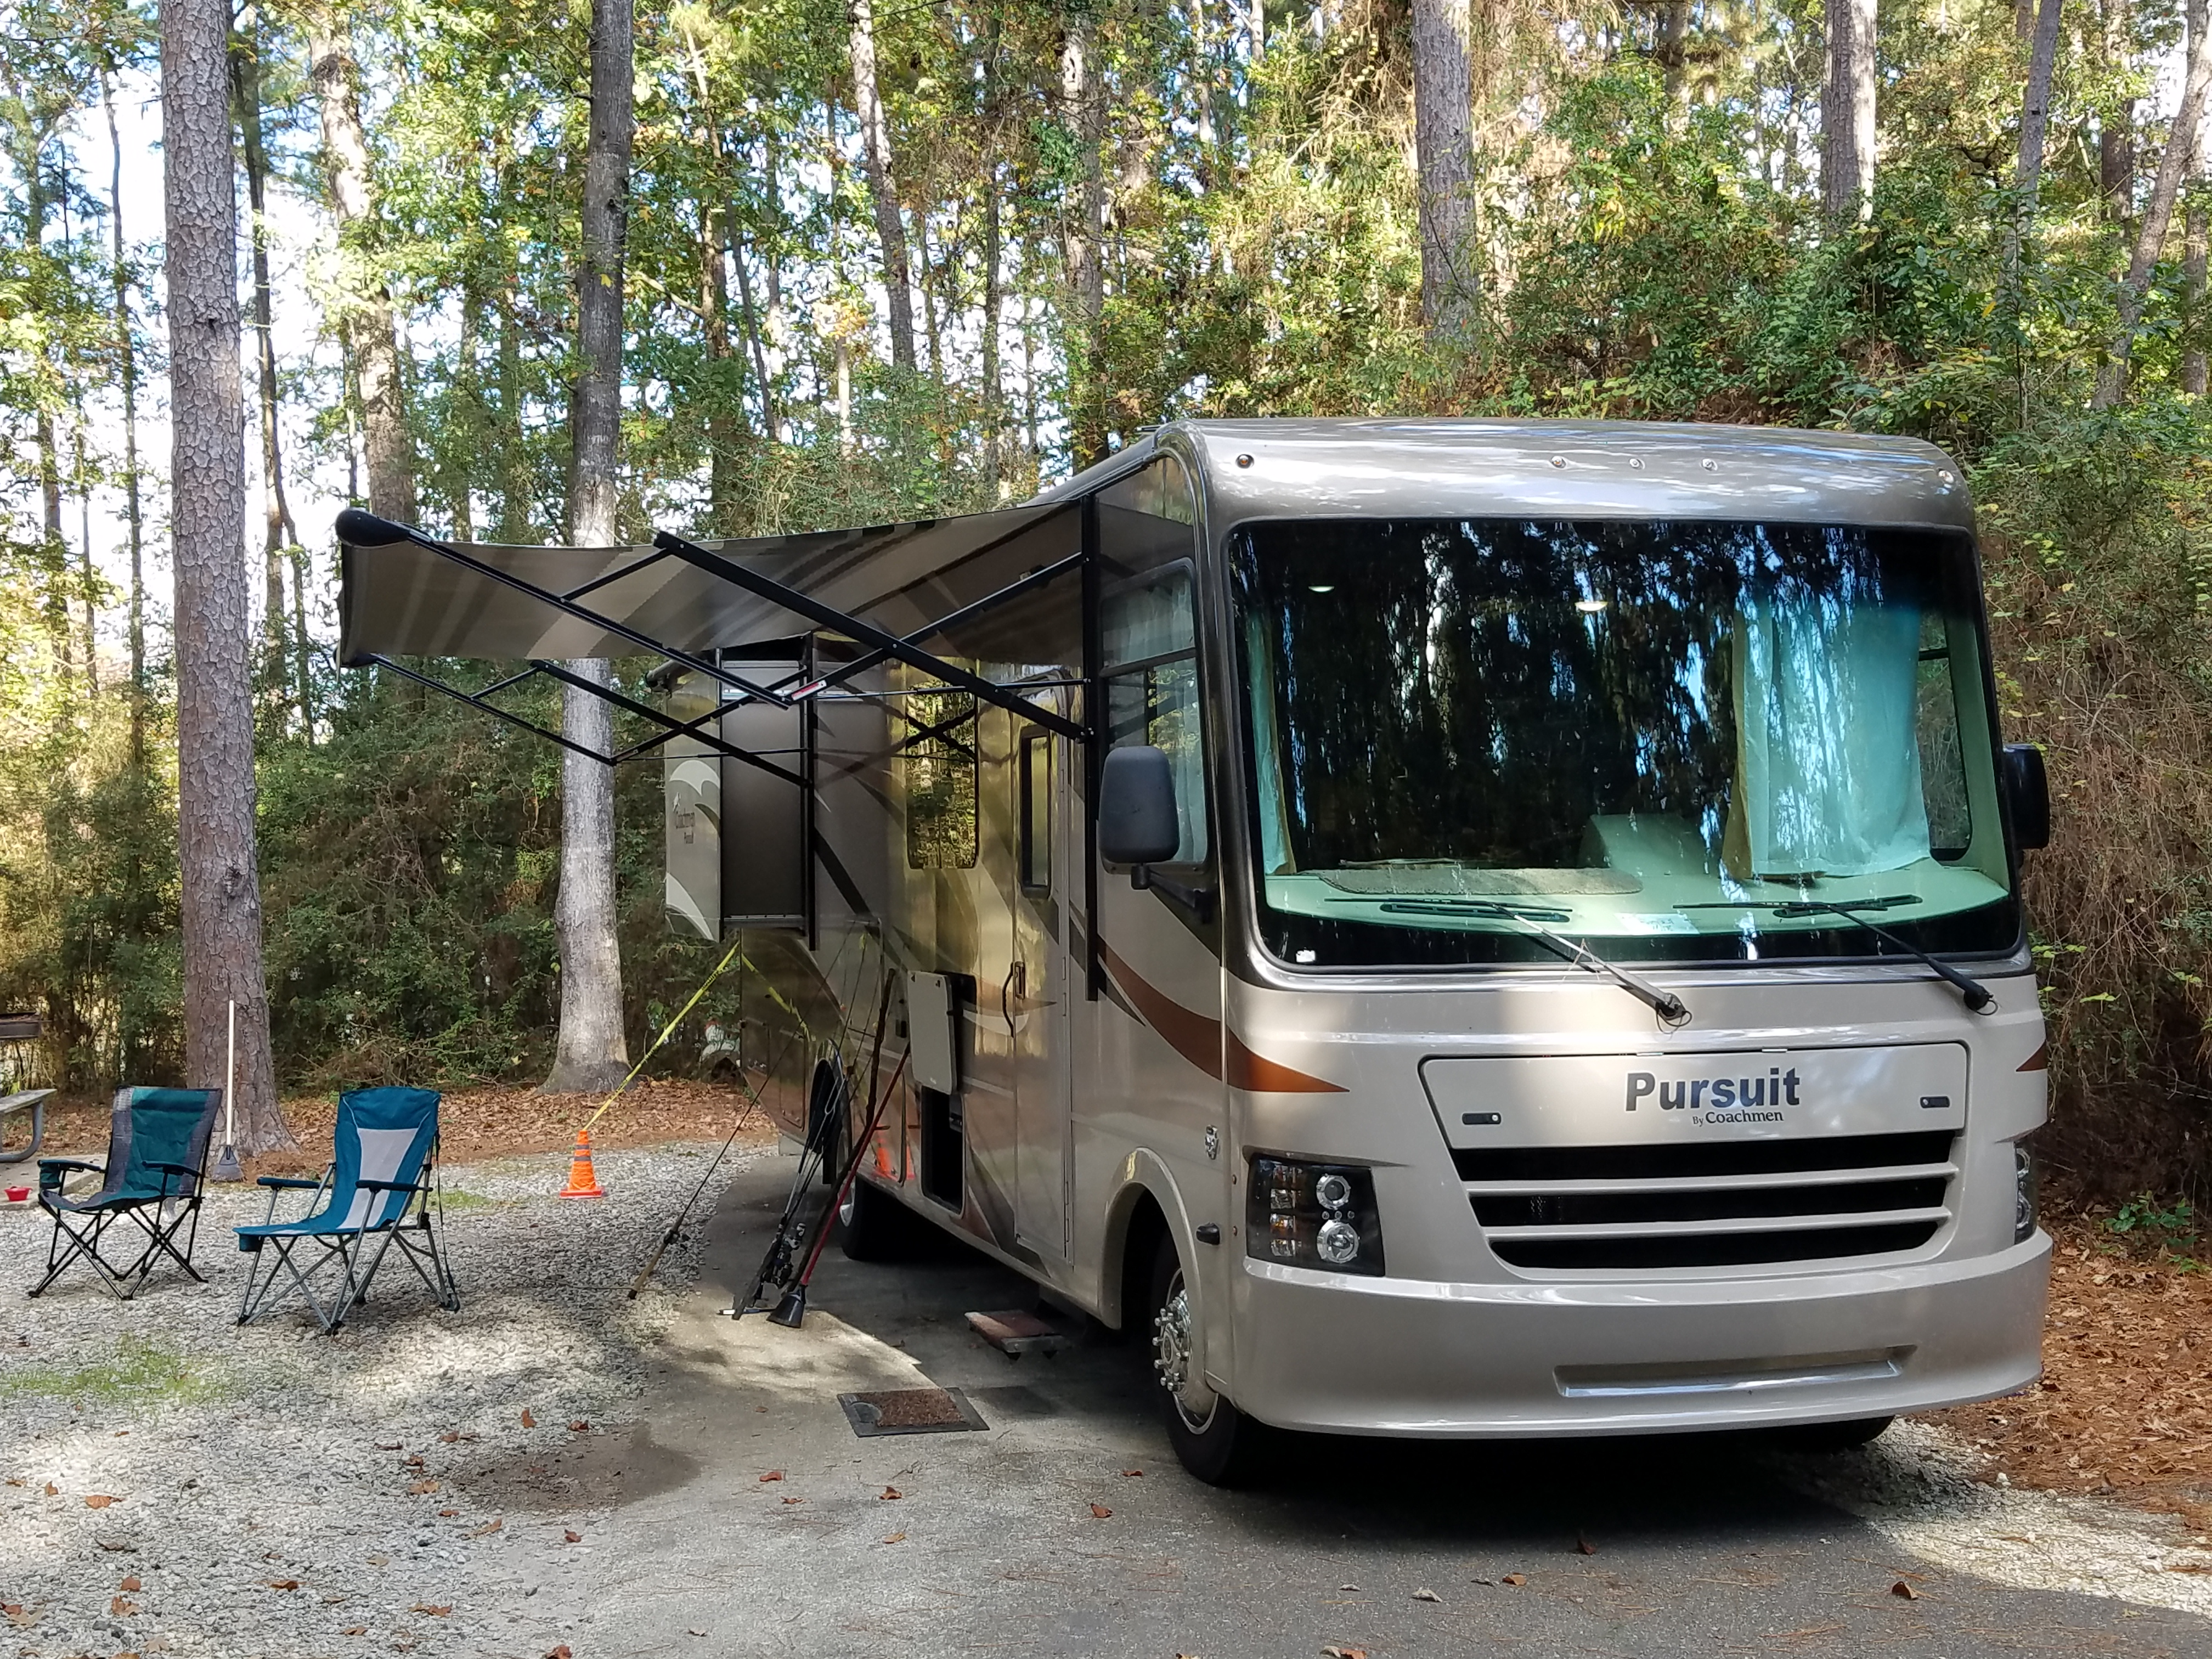 Fun camping with no bugs, air conditioning, and memory foam comfortable king size bed.. Coachmen Pursuit 2017